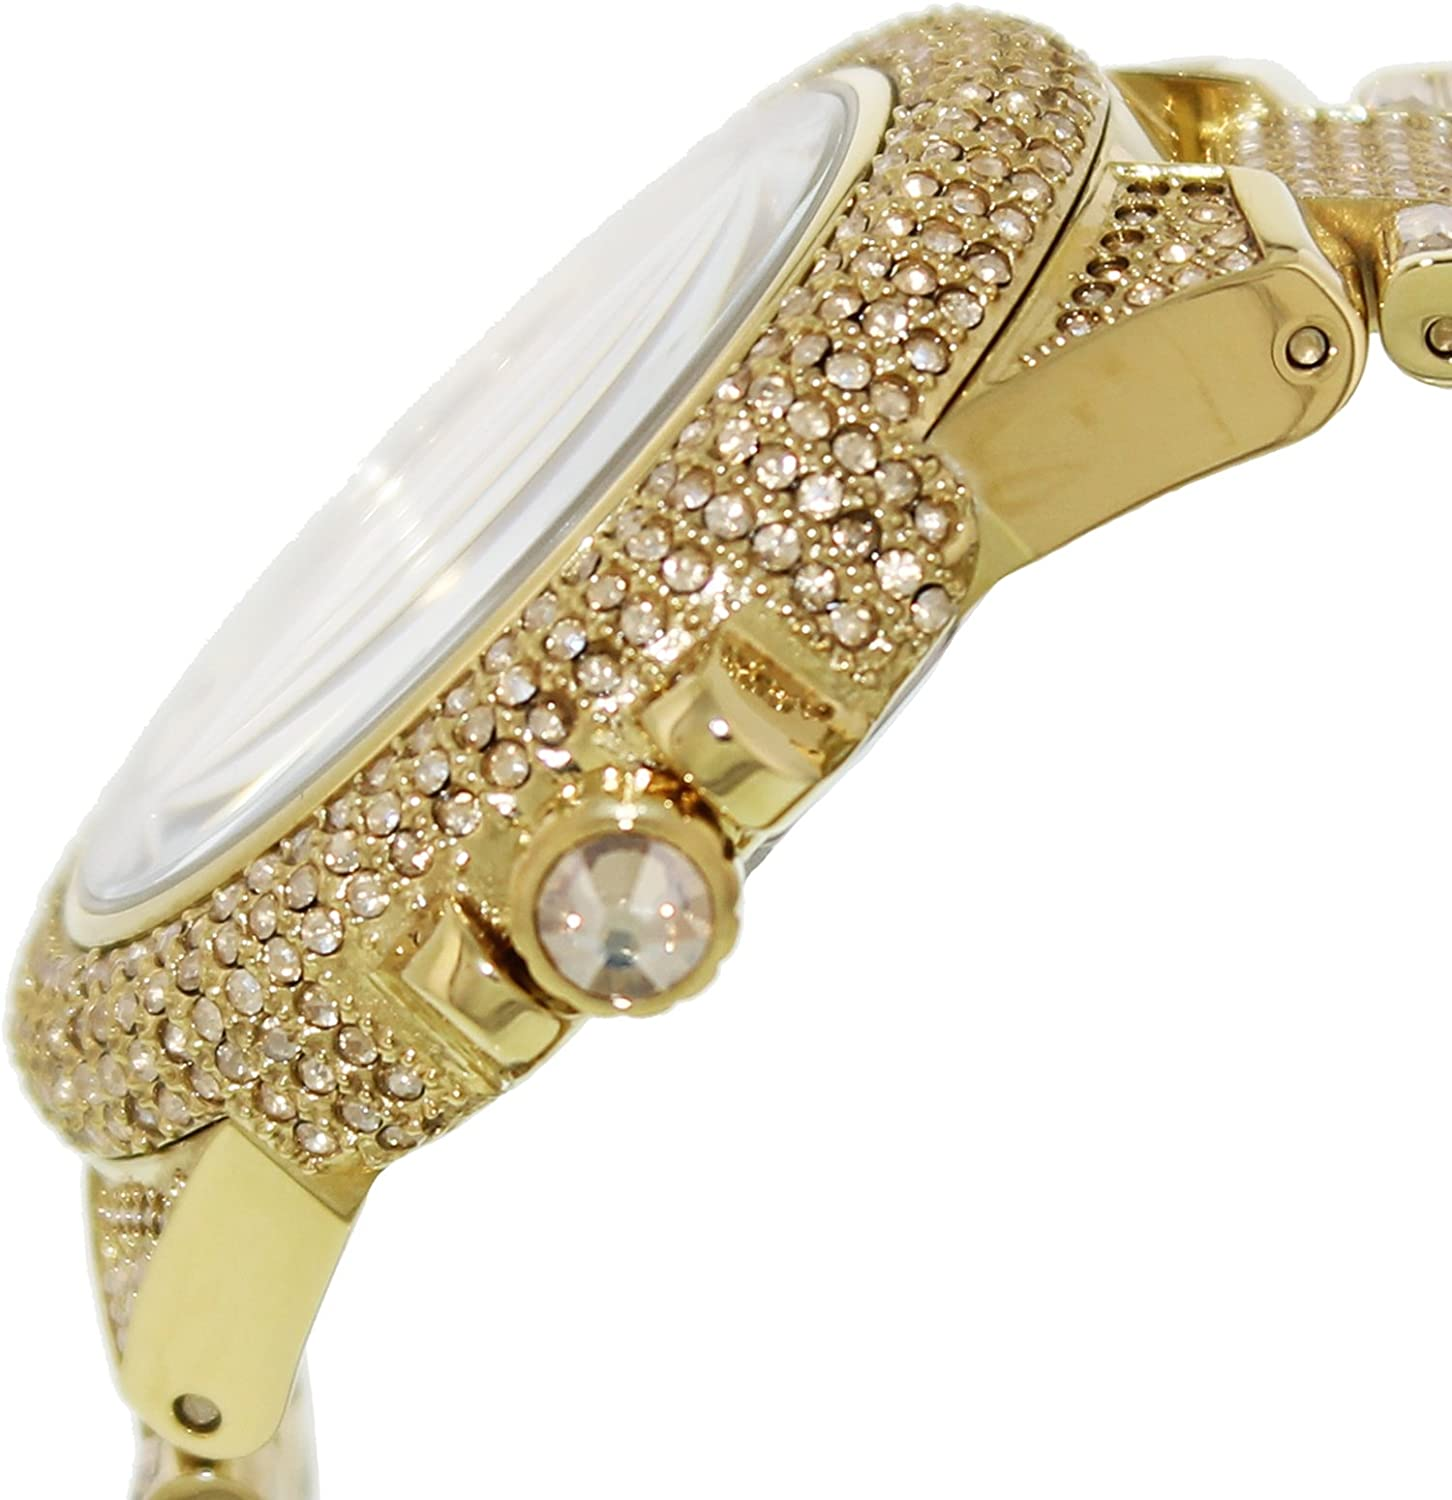 96274a64d2af7 Amazon.com  Michael Kors Camille Crystal Covered Gold Stainless Steel  Ladies Watch MK5720  Watches